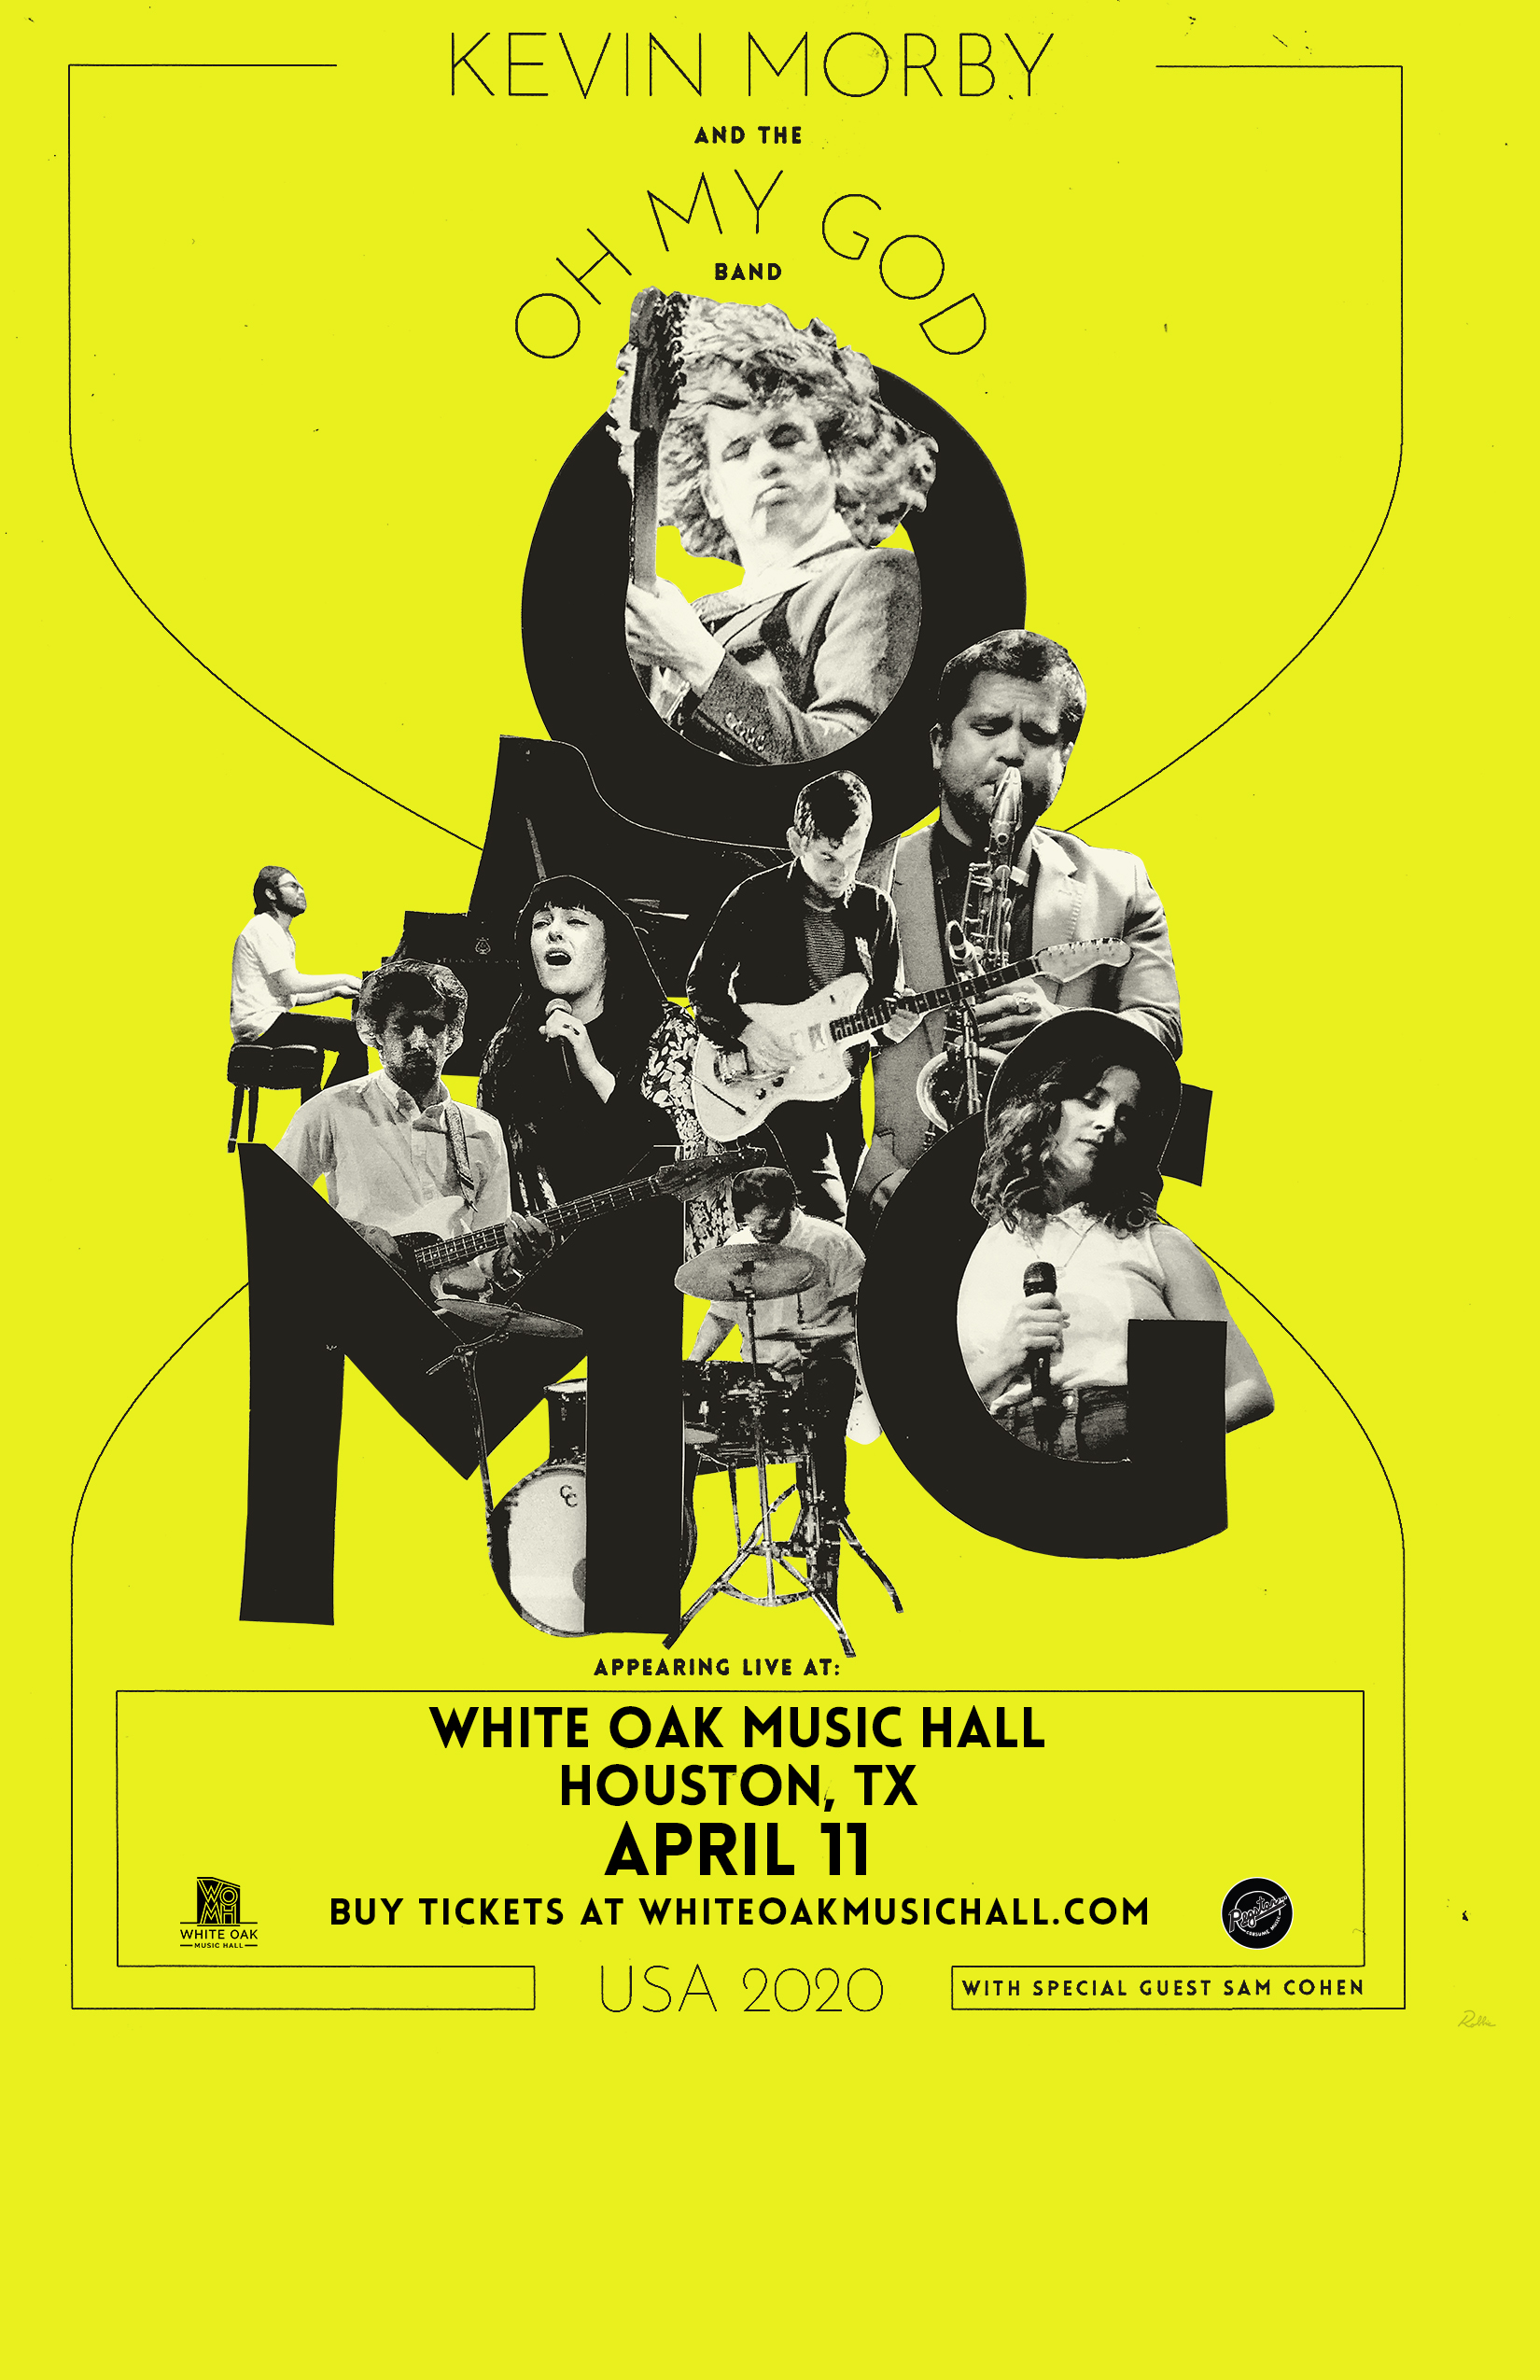 Houston Events April 2020.Buy Tickets To Kevin Morby April 2020 Tour In Houston